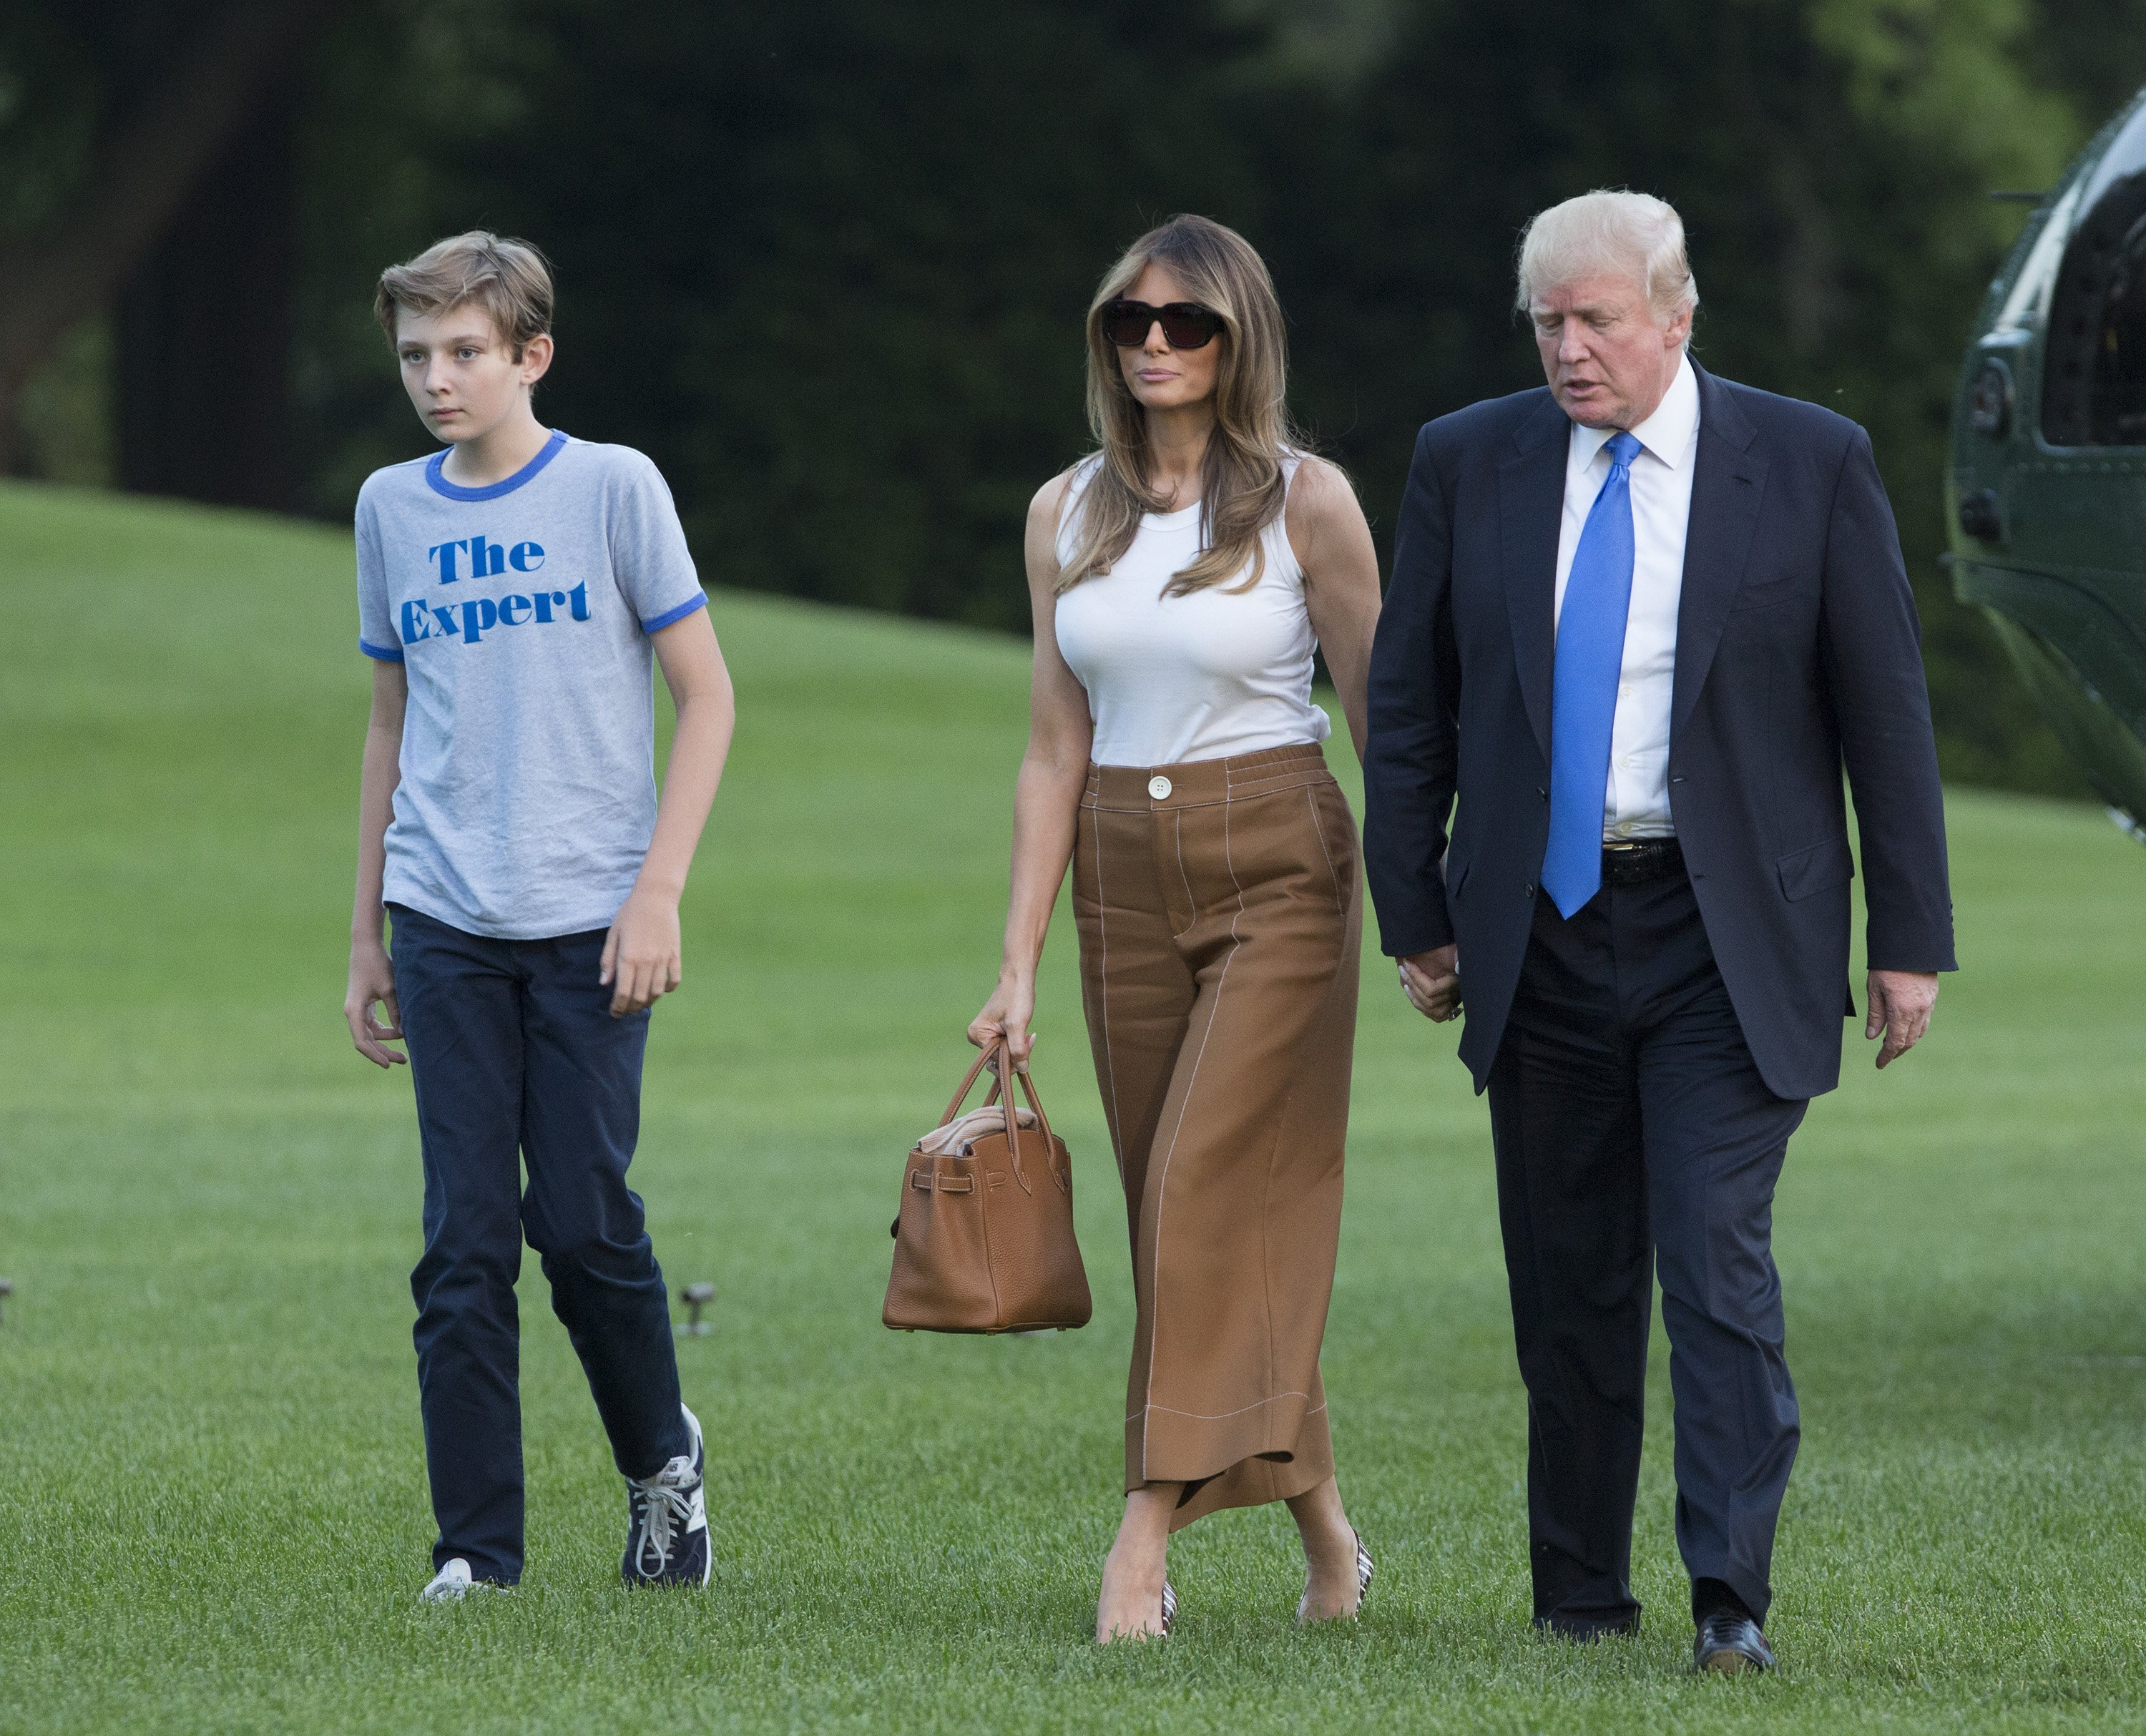 Donald, Melania, and Barron Trump move into the White House in Washington, DC | Photo: Getty Images